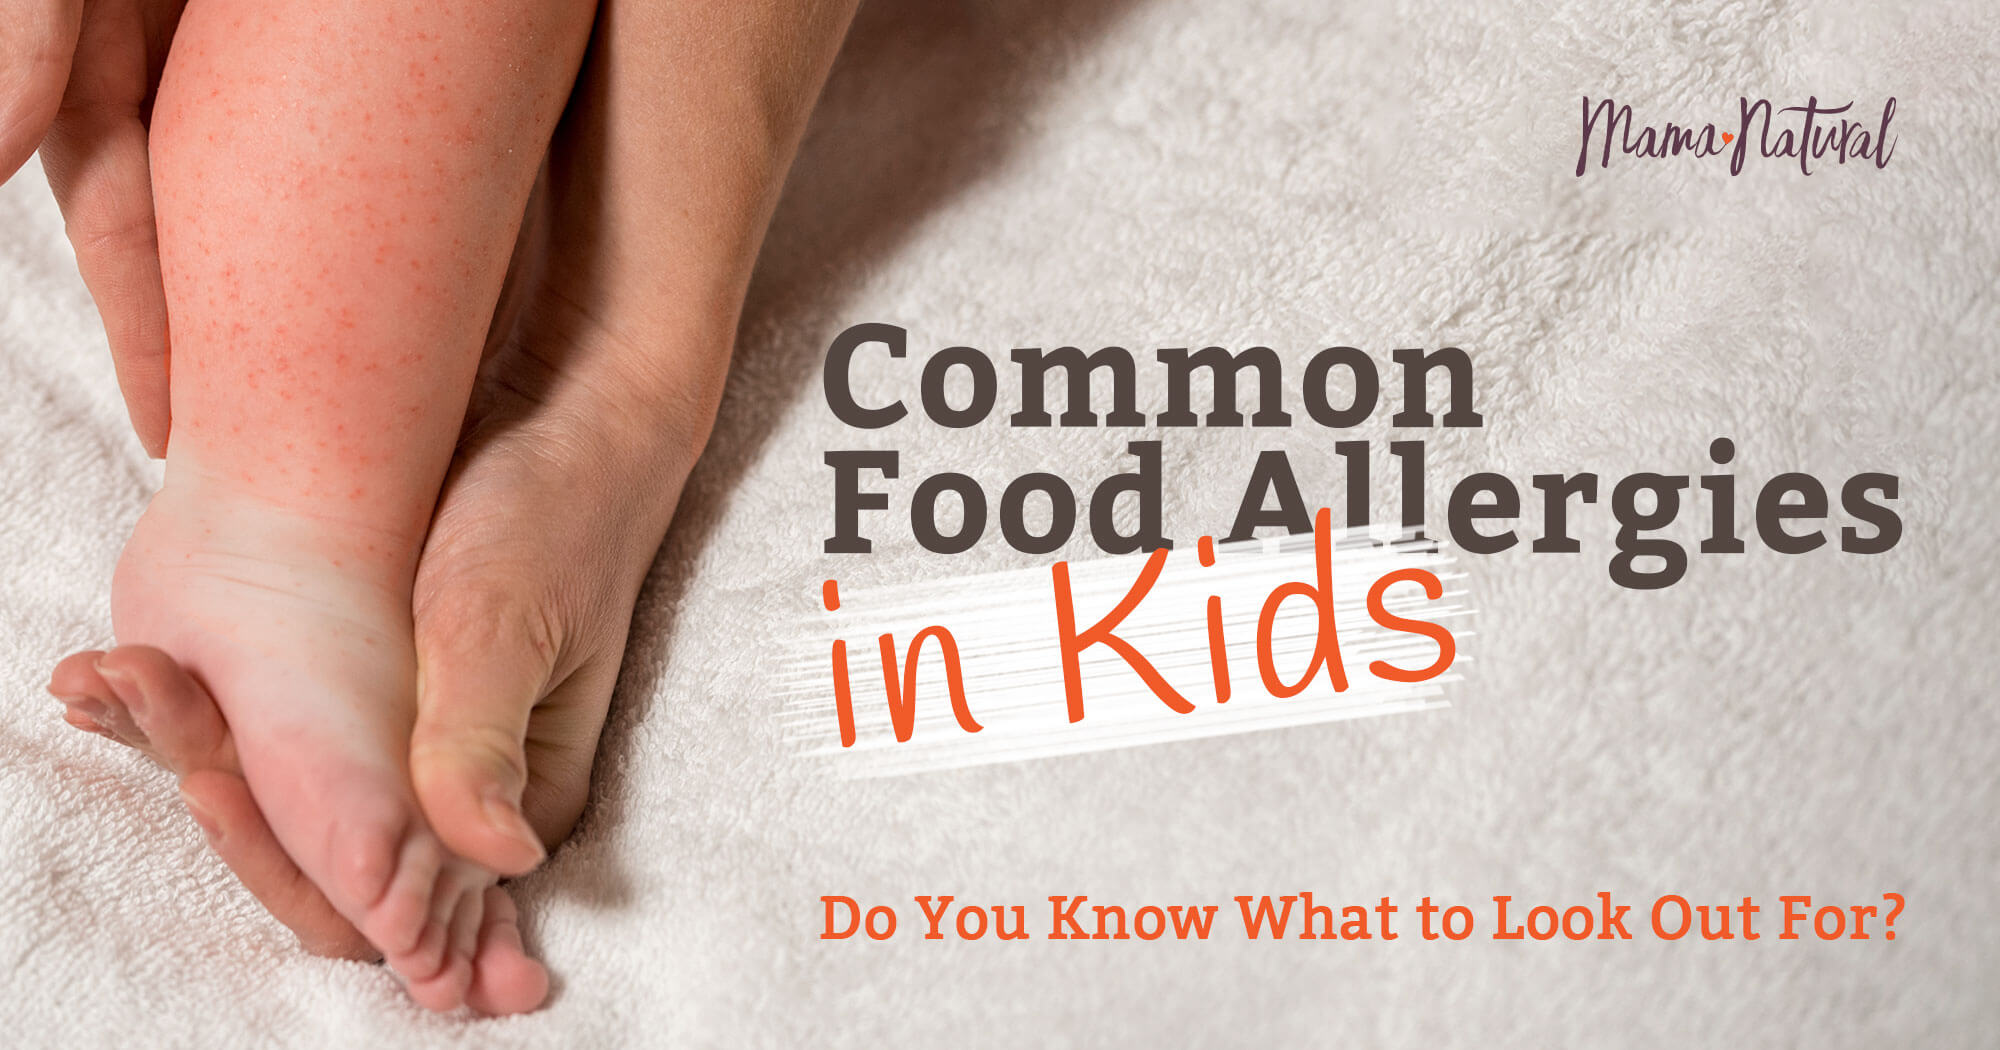 Common Food Allergies in Kids: Watch Out For These 8 Foods